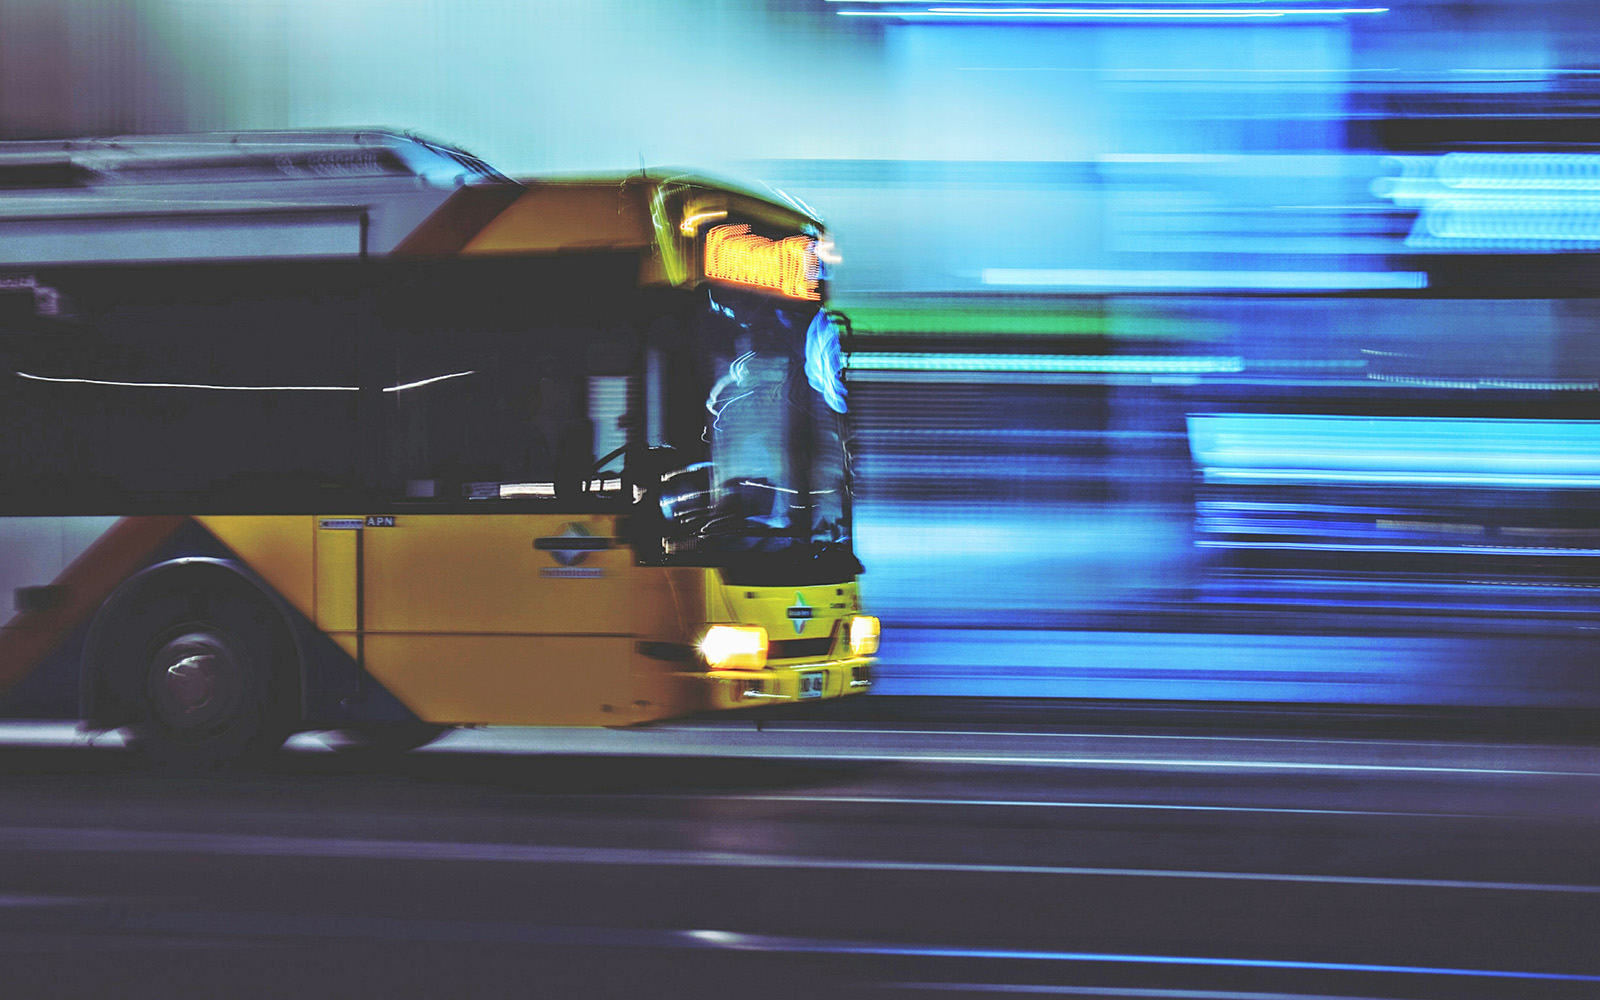 Blurred Motion Of Bus On Road At Night